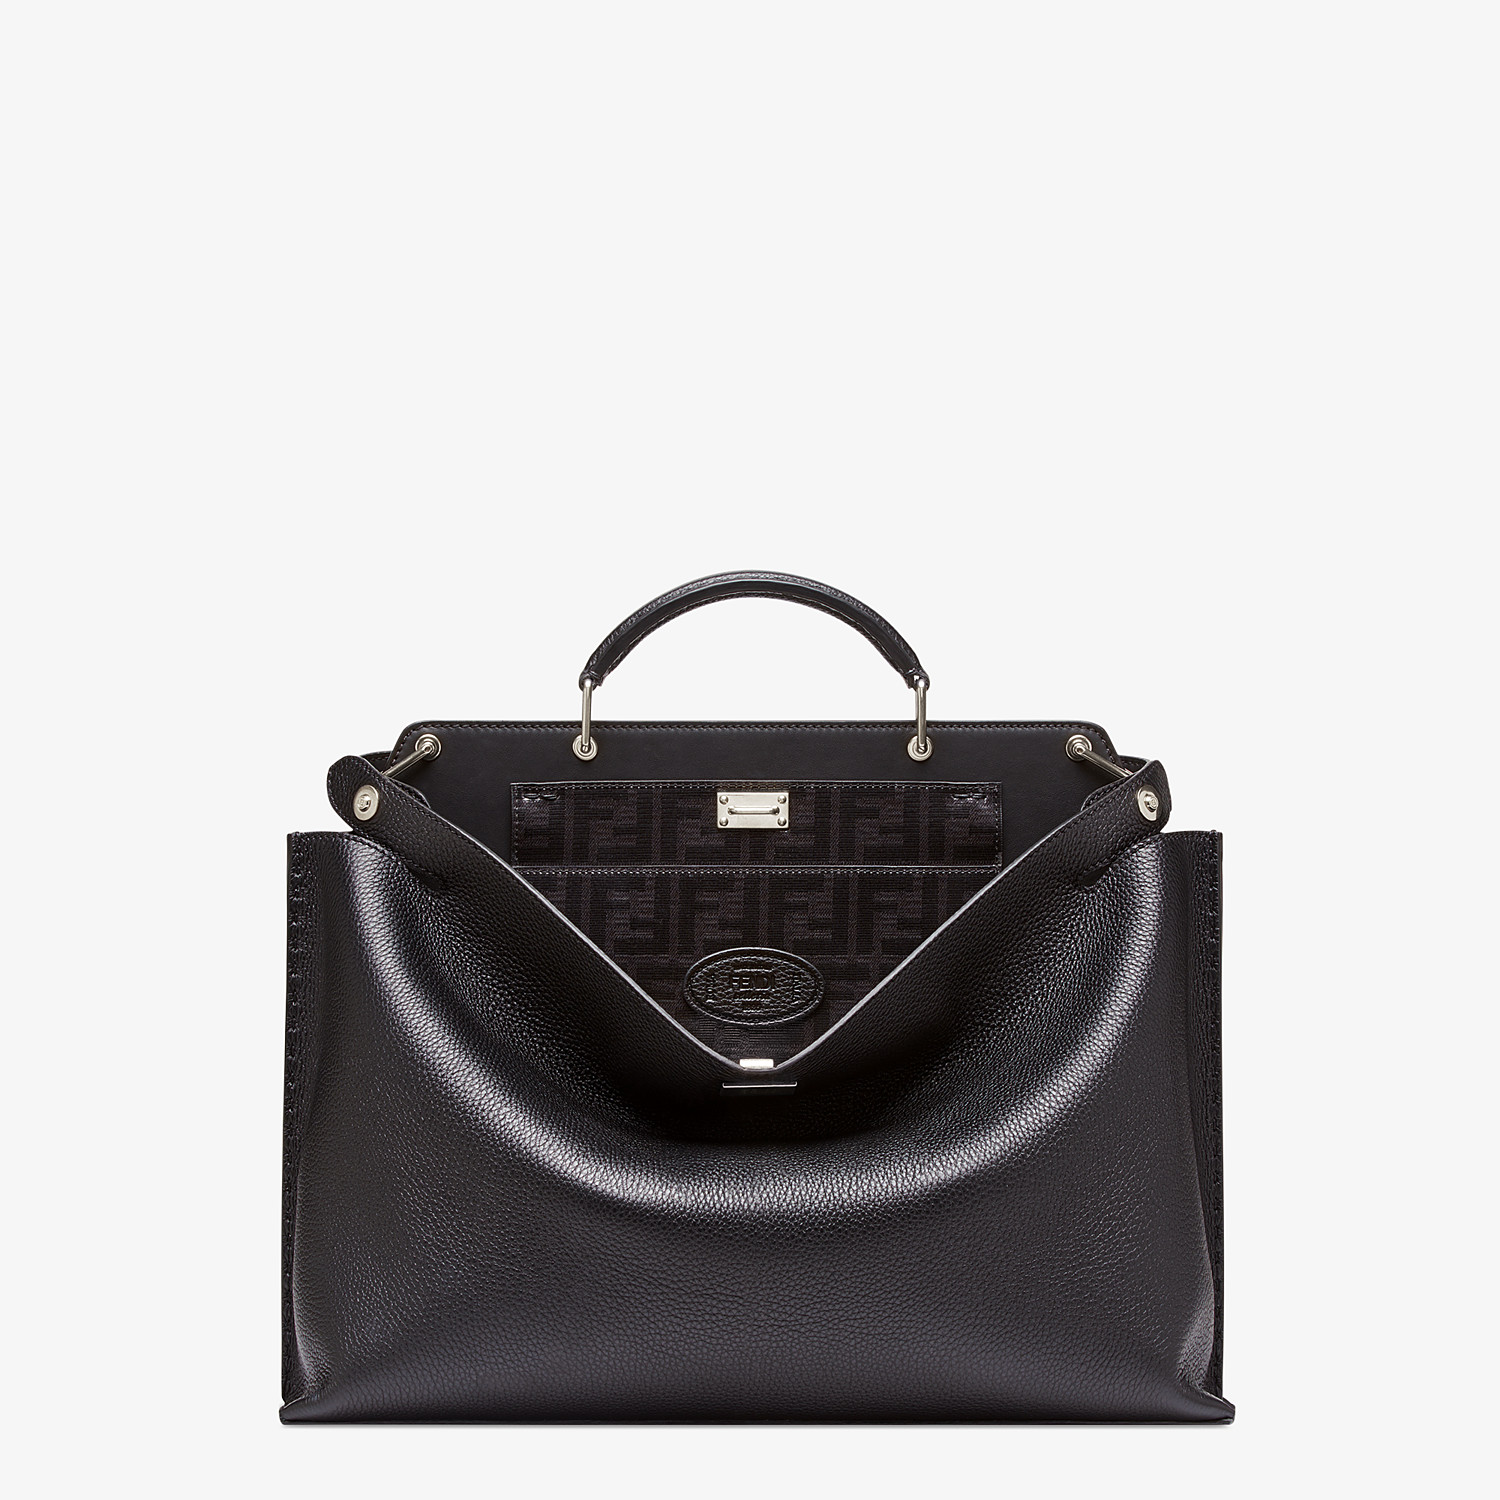 FENDI PEEKABOO ICONIC ESSENTIAL - Tasche aus Leder in Schwarz - view 1 detail